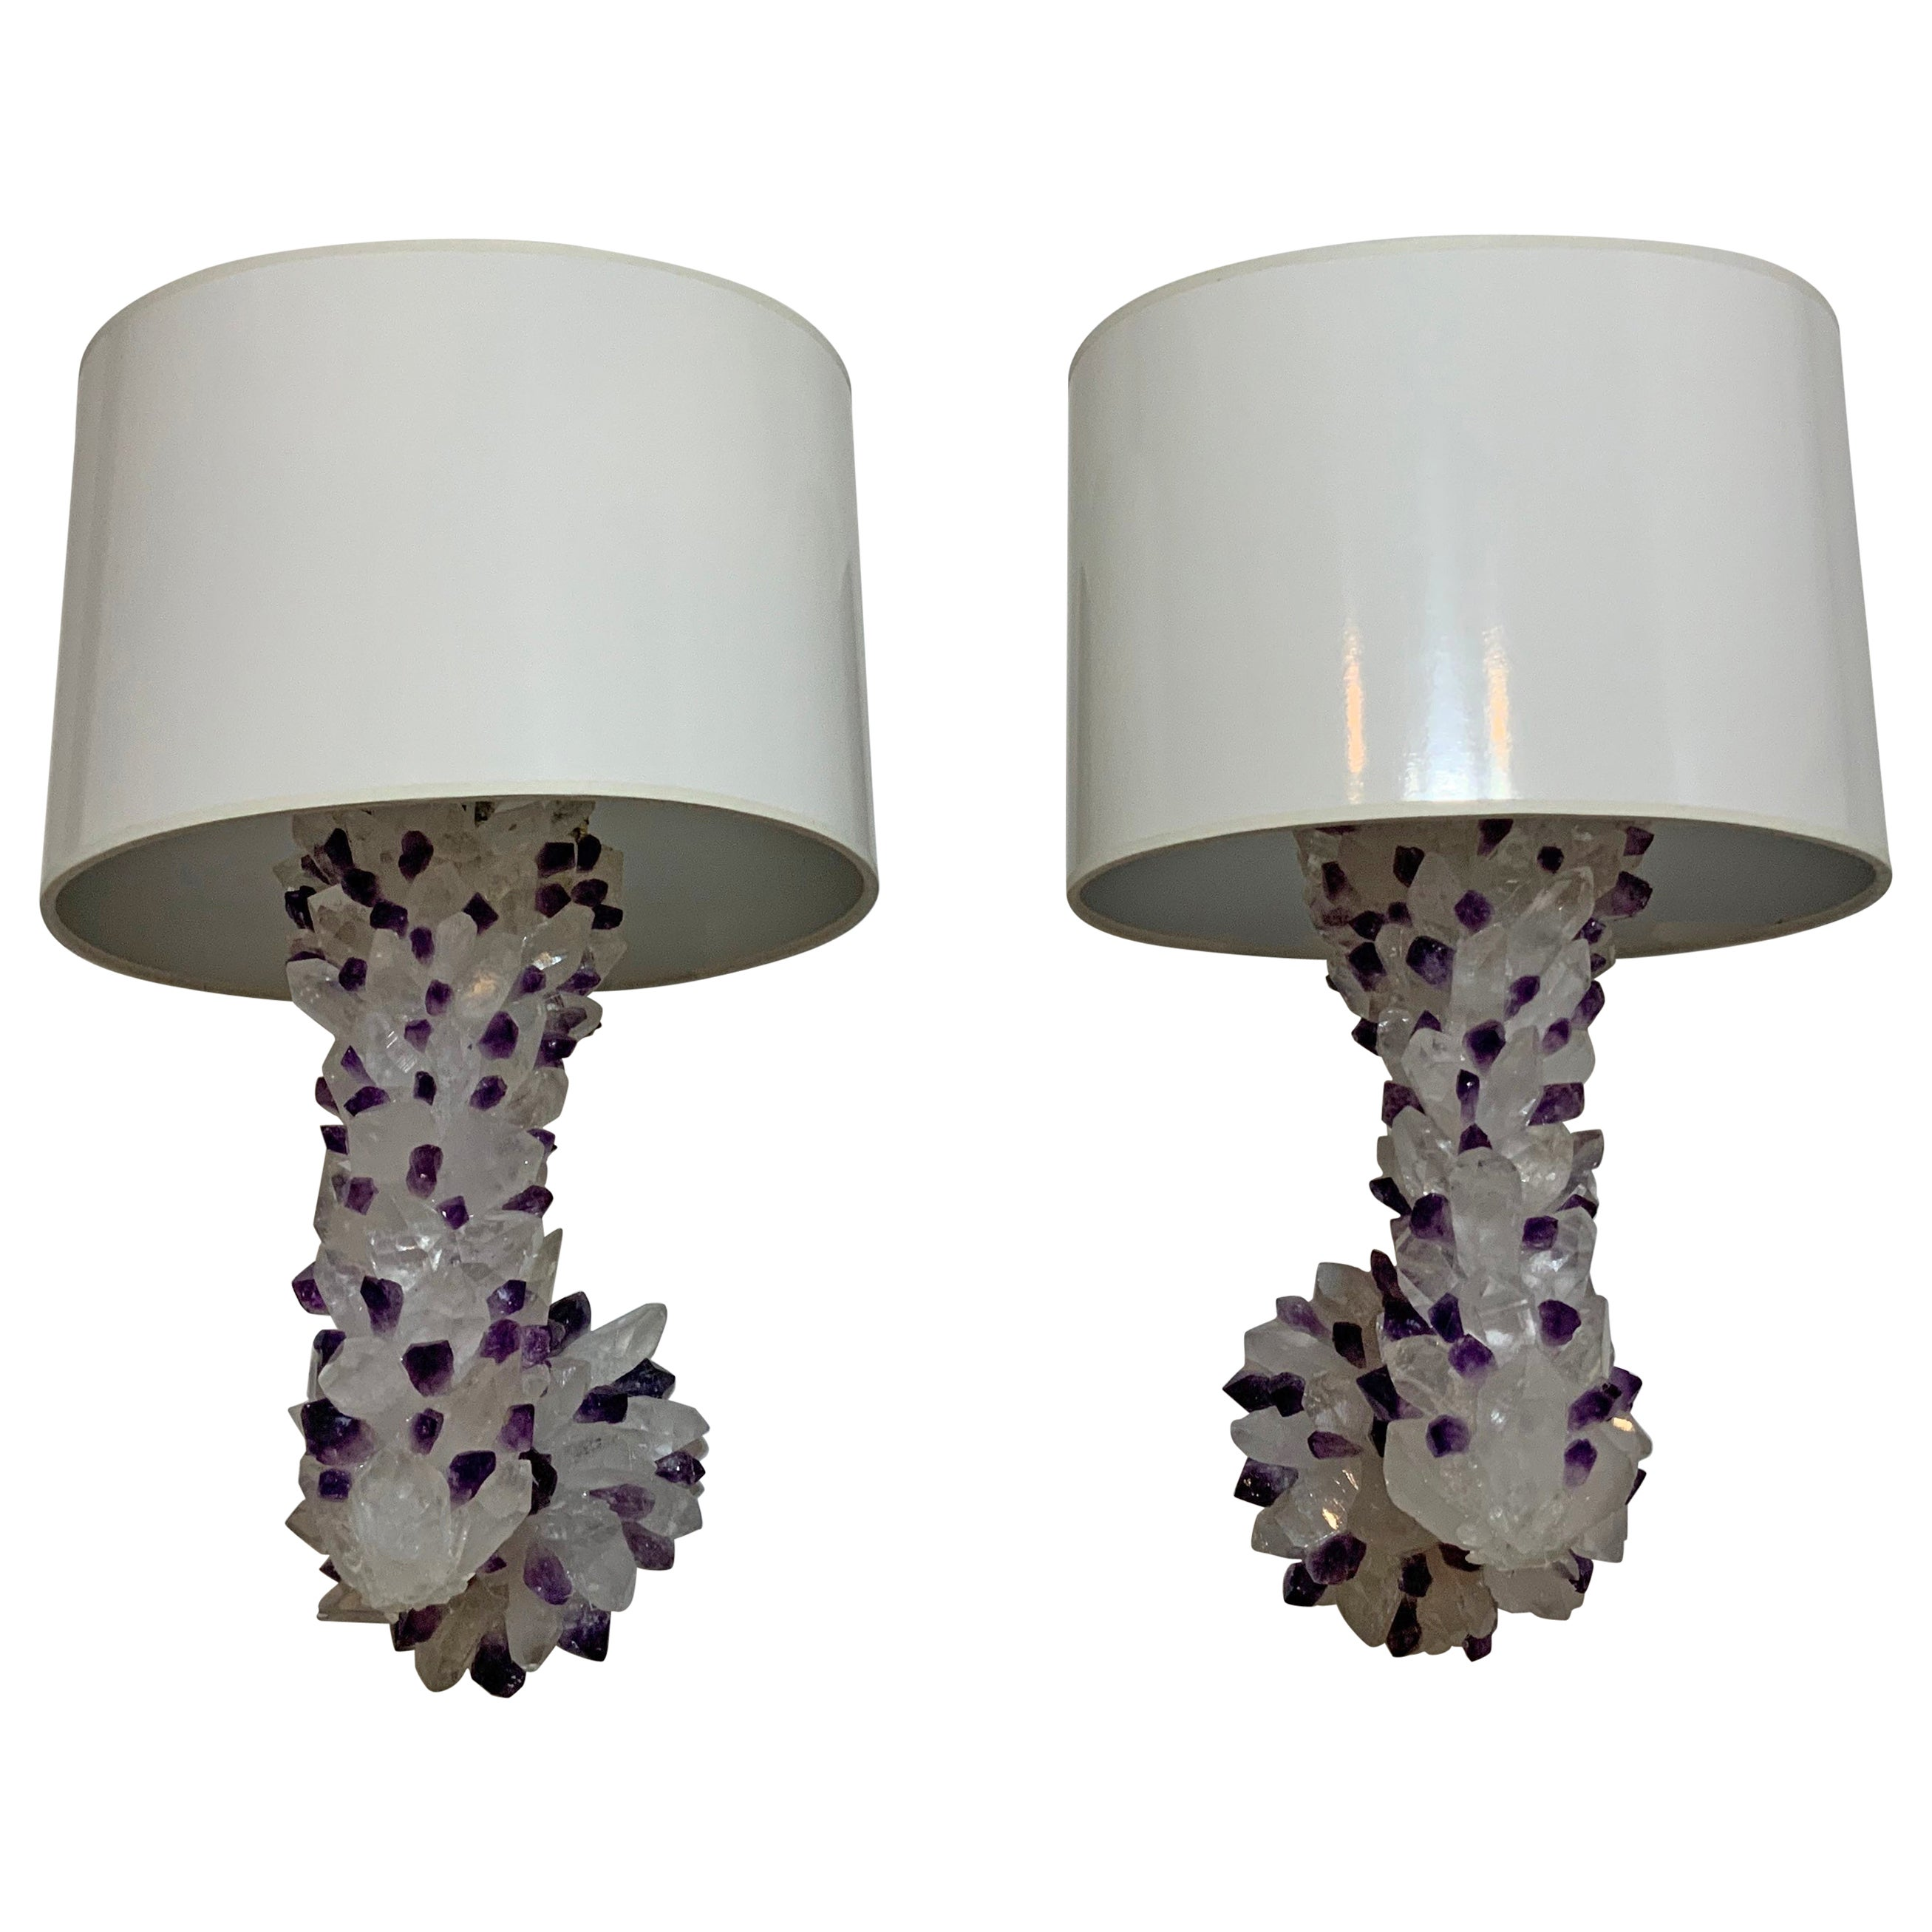 Pair of Amethyst and Crystal Quartz Wall Sconces